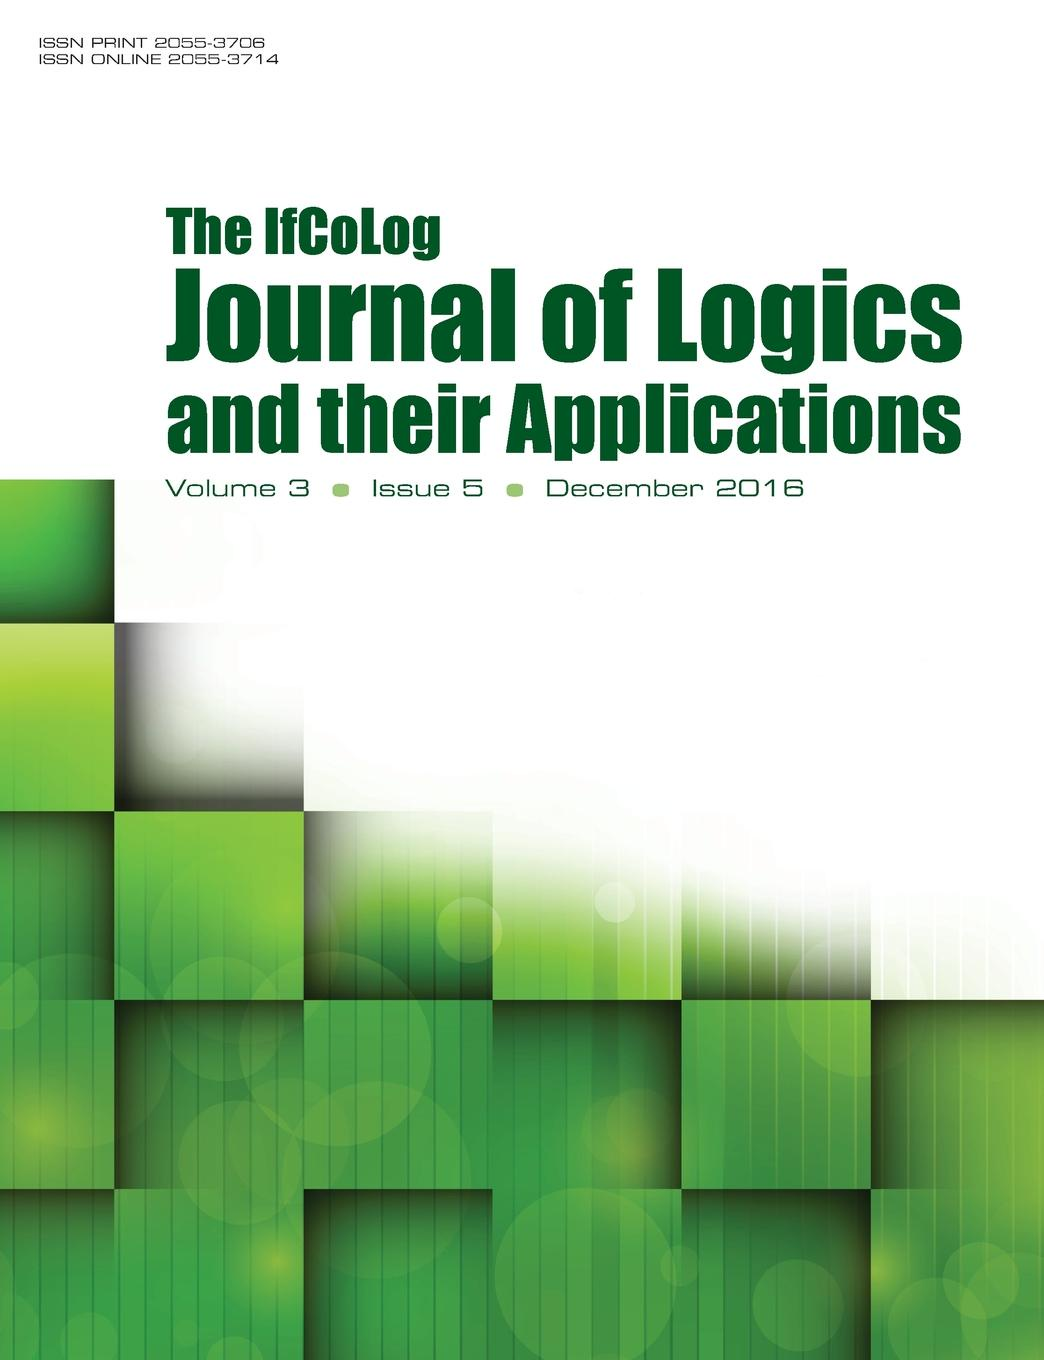 Ifcolog Journal of Logics and their Applications Volume 3, number 5